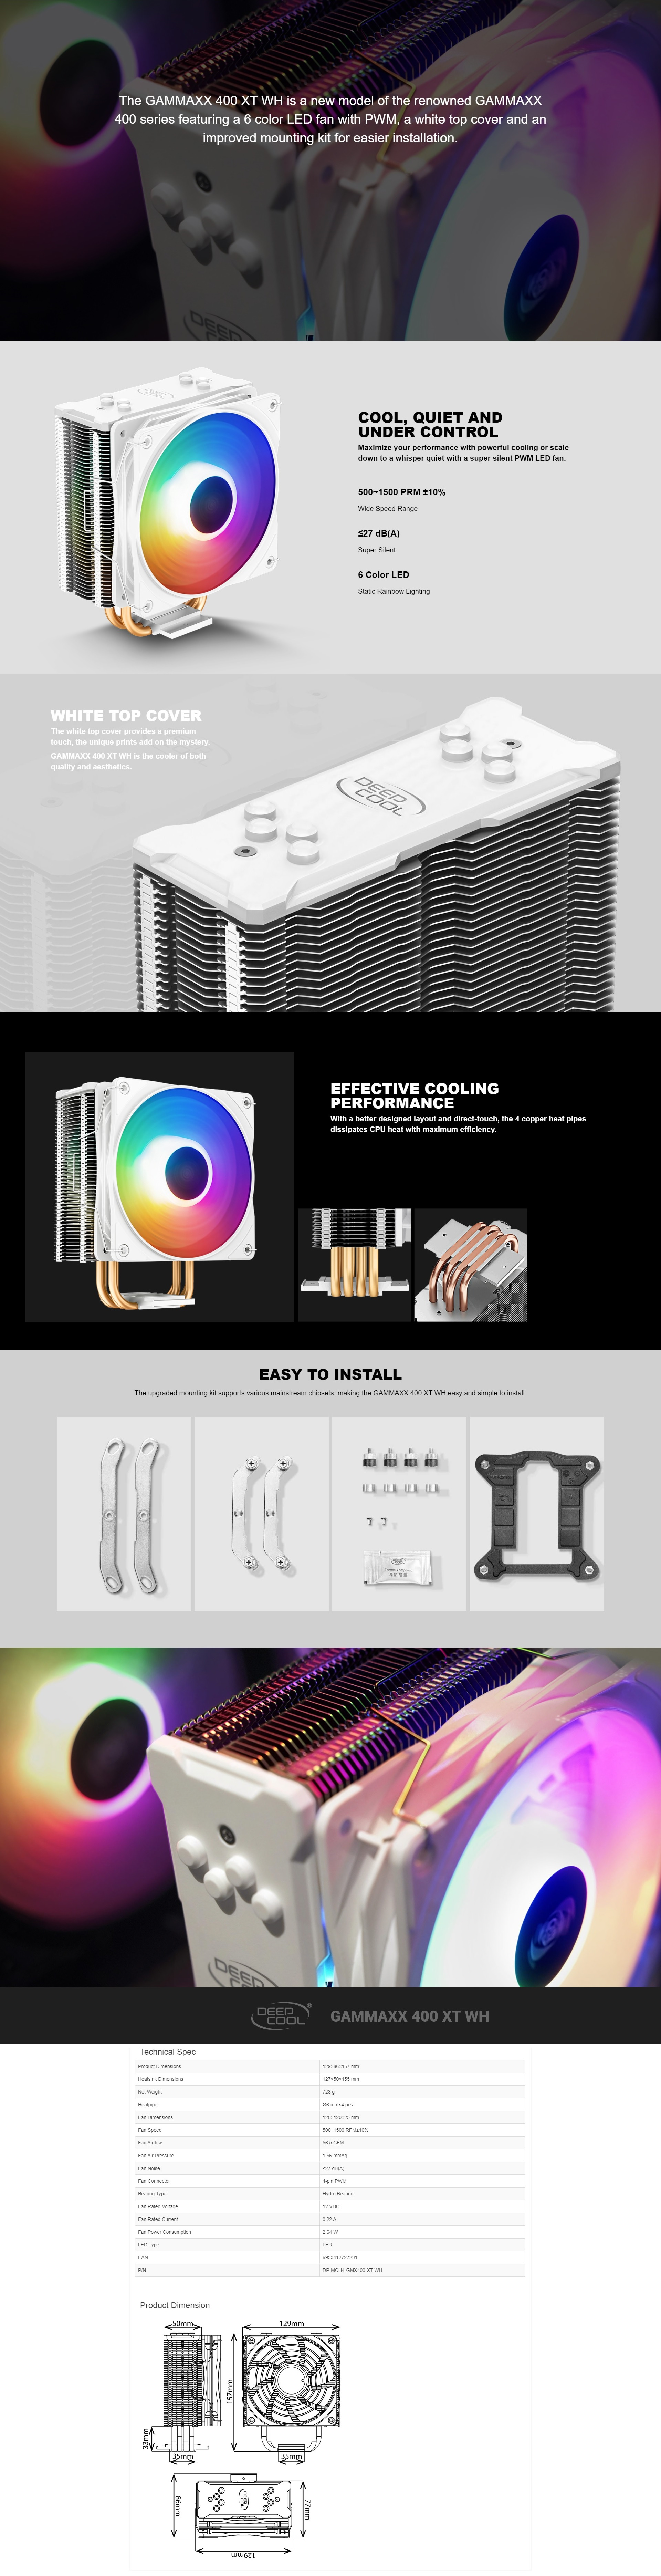 A large marketing image providing additional information about the product Deepcool GAMMAXX 400 XT White RGB CPU Air Cooler - Additional alt info not provided